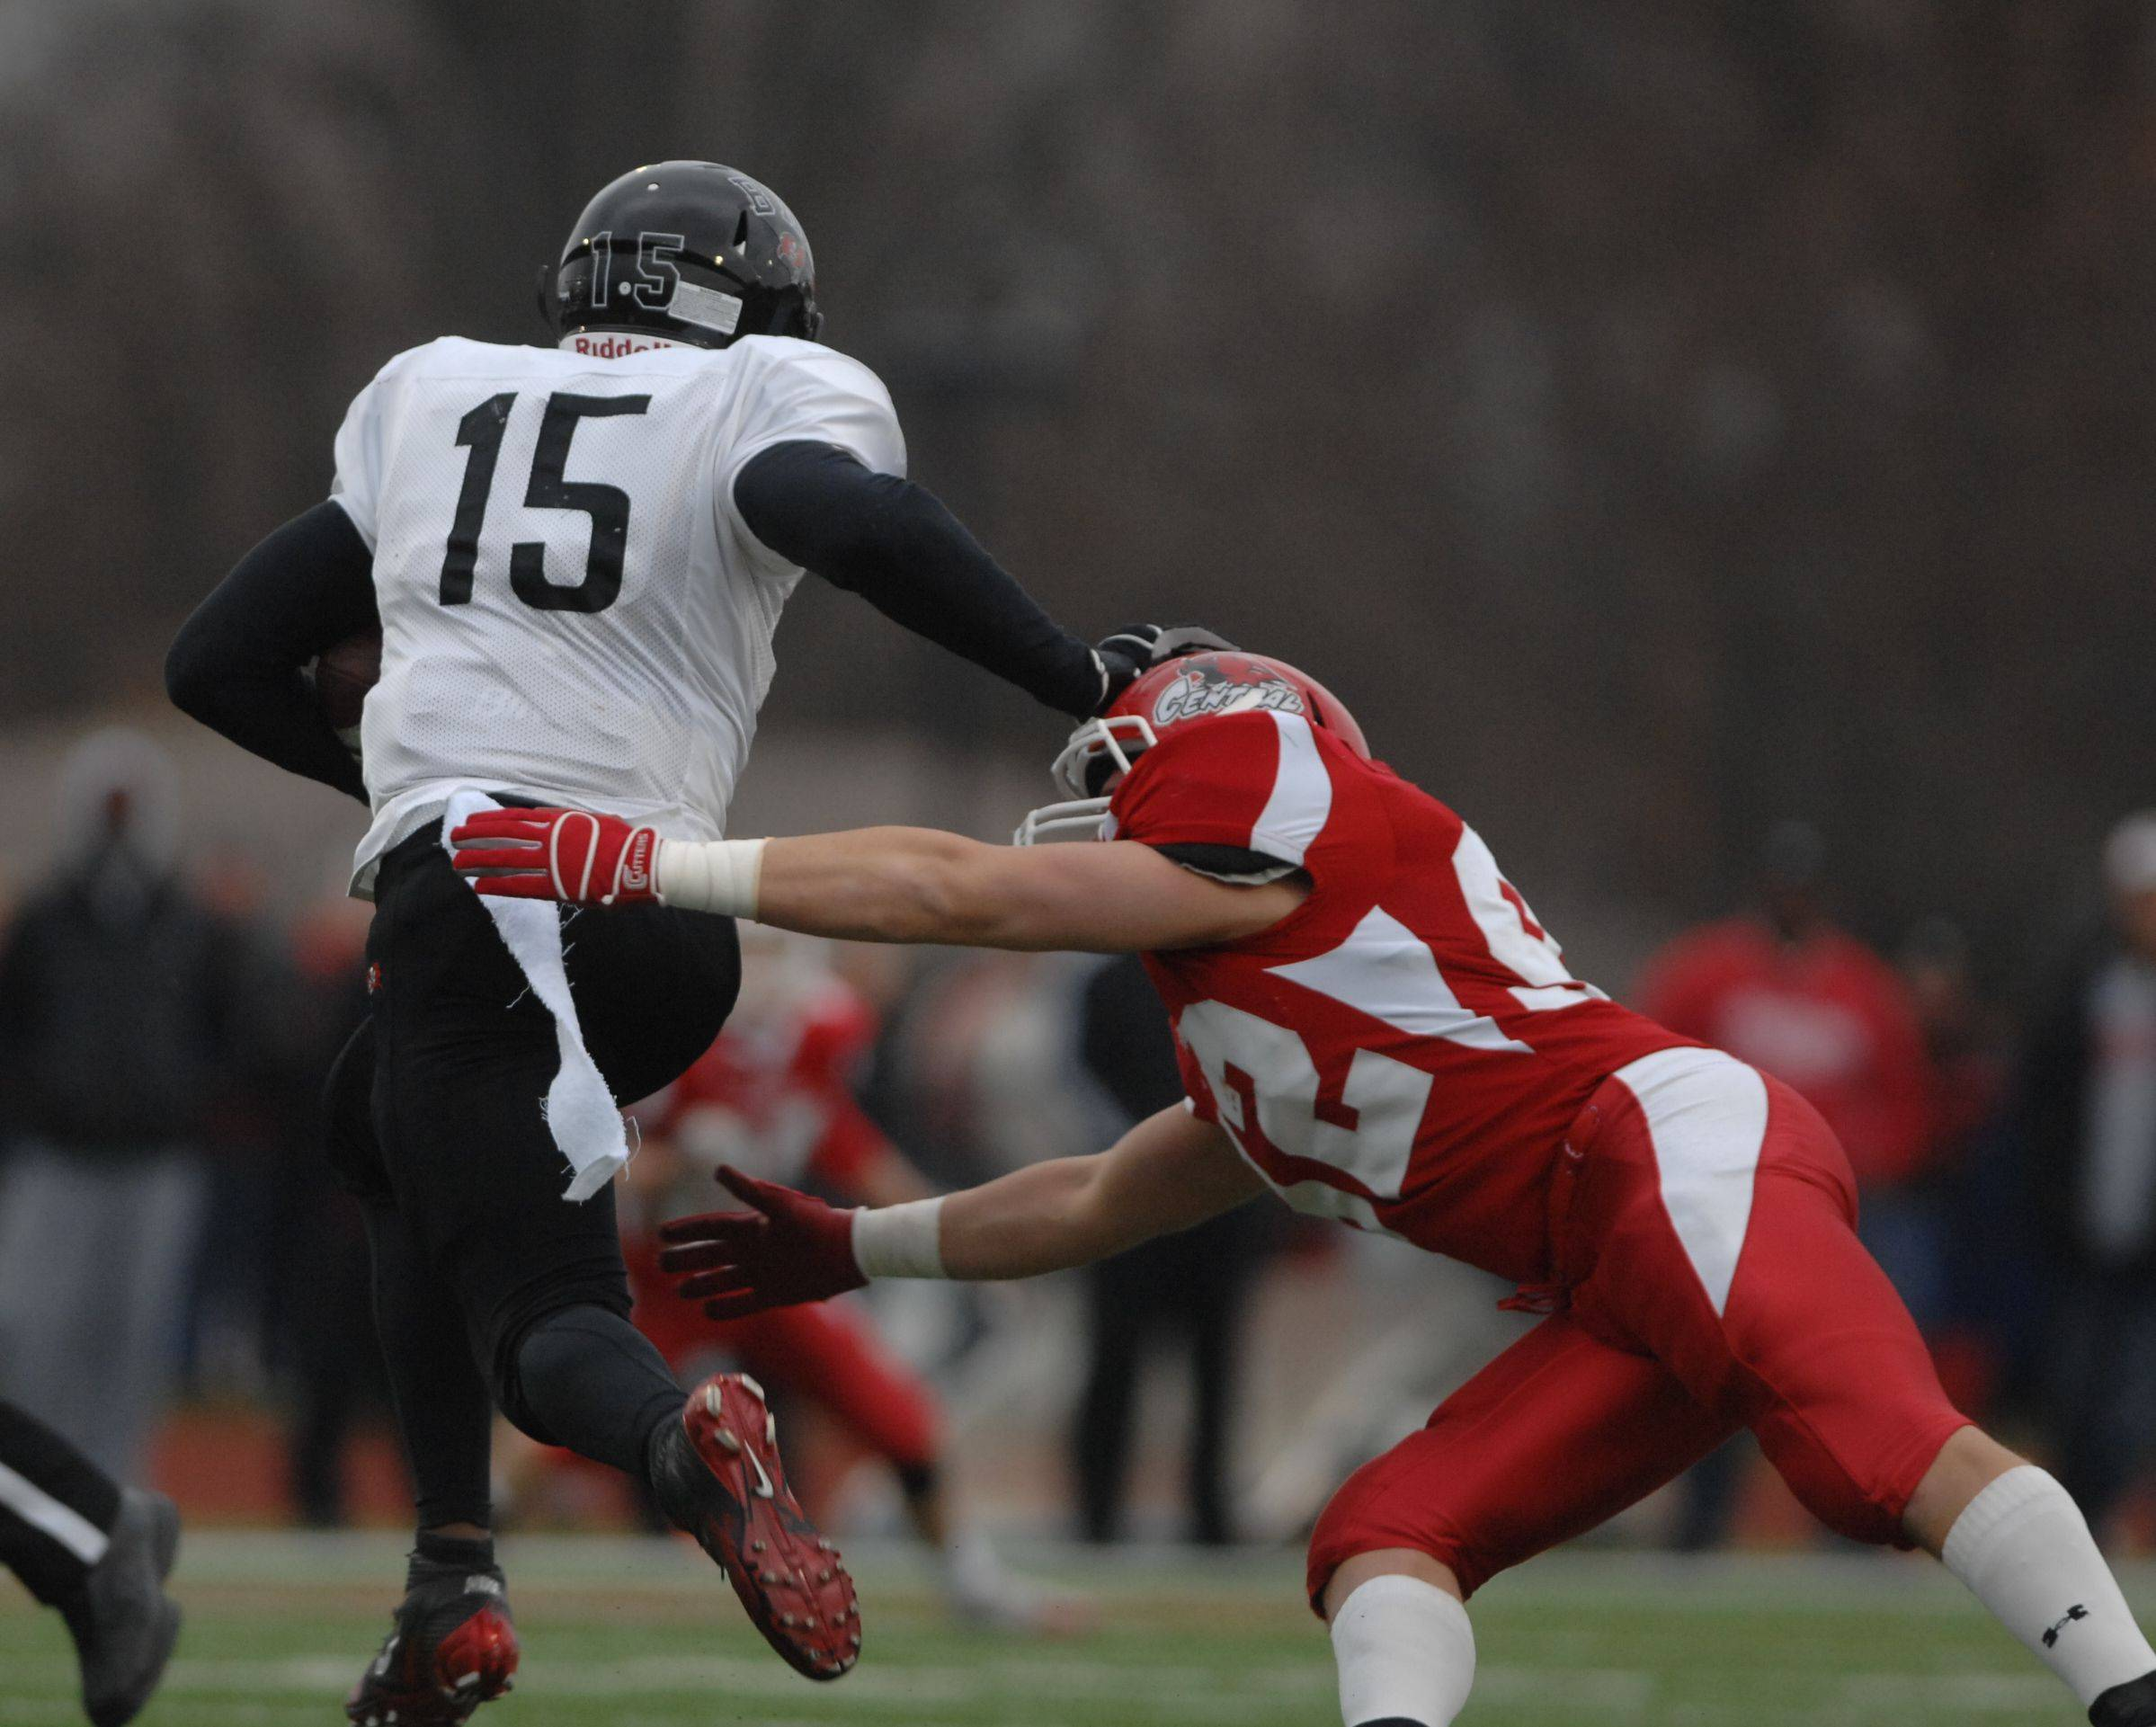 Playoffs - Round Four - Bolingbrook at Naperville Central football in Class 8A semifinals.